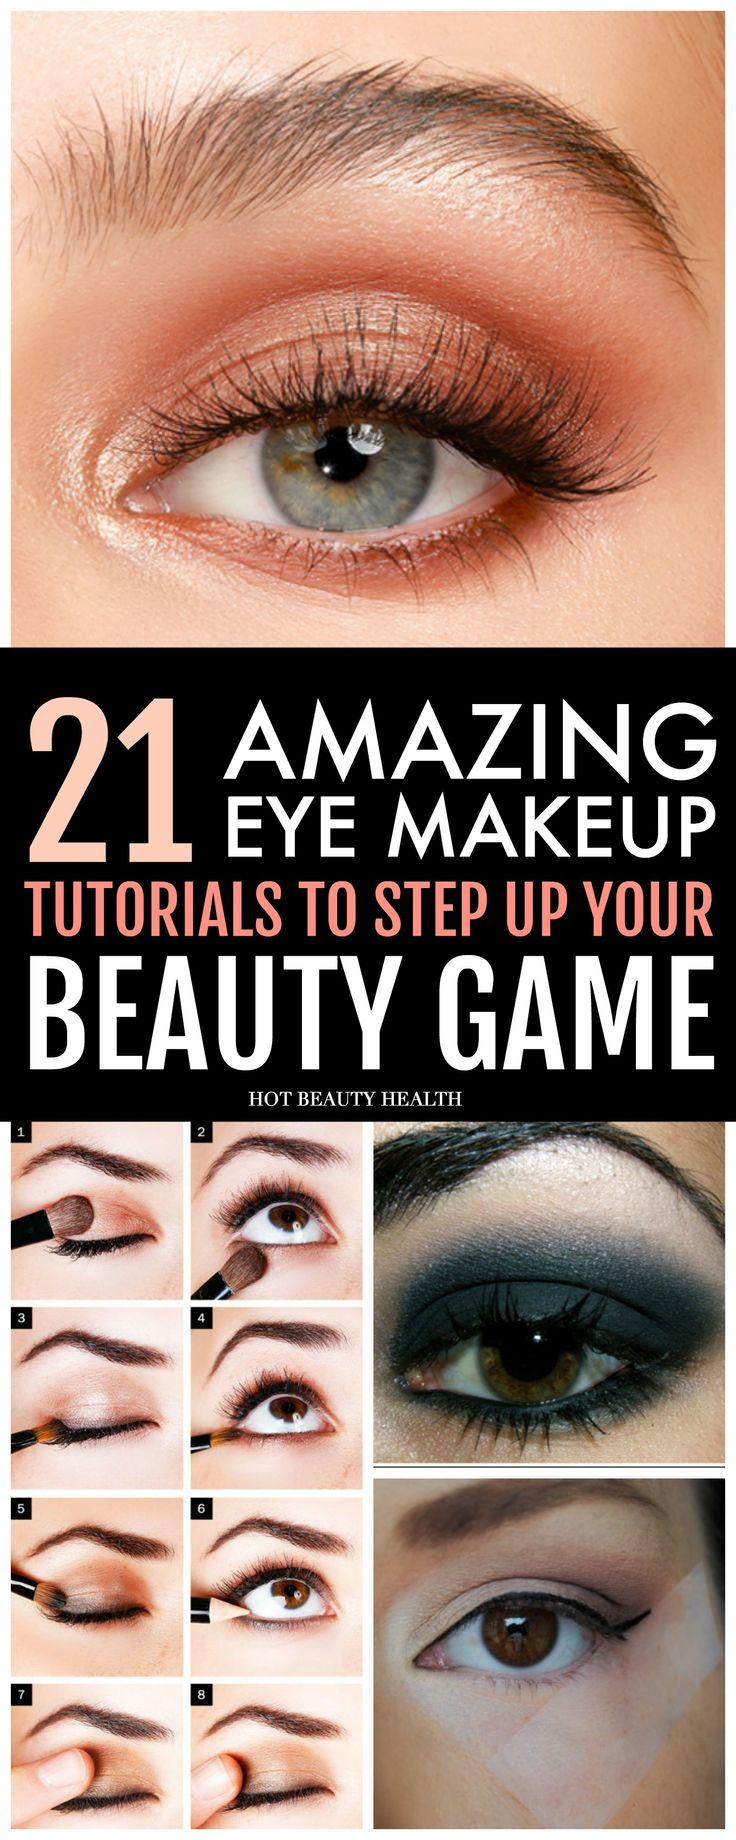 21 easy dramatic eye makeup ideas for beginners. Amazing smokey and colorful eye looks that are next level. You can find a tutorial for blue, green, hazel, or brown eyes; hooded eyes, cut crease, and more. Perfect for prom, wedding or an evening look. Click pin for step by step and video tutorials! Hot Beauty Health #eyemakeup #makeup #makeuptutorials #eyemakeuptutorials